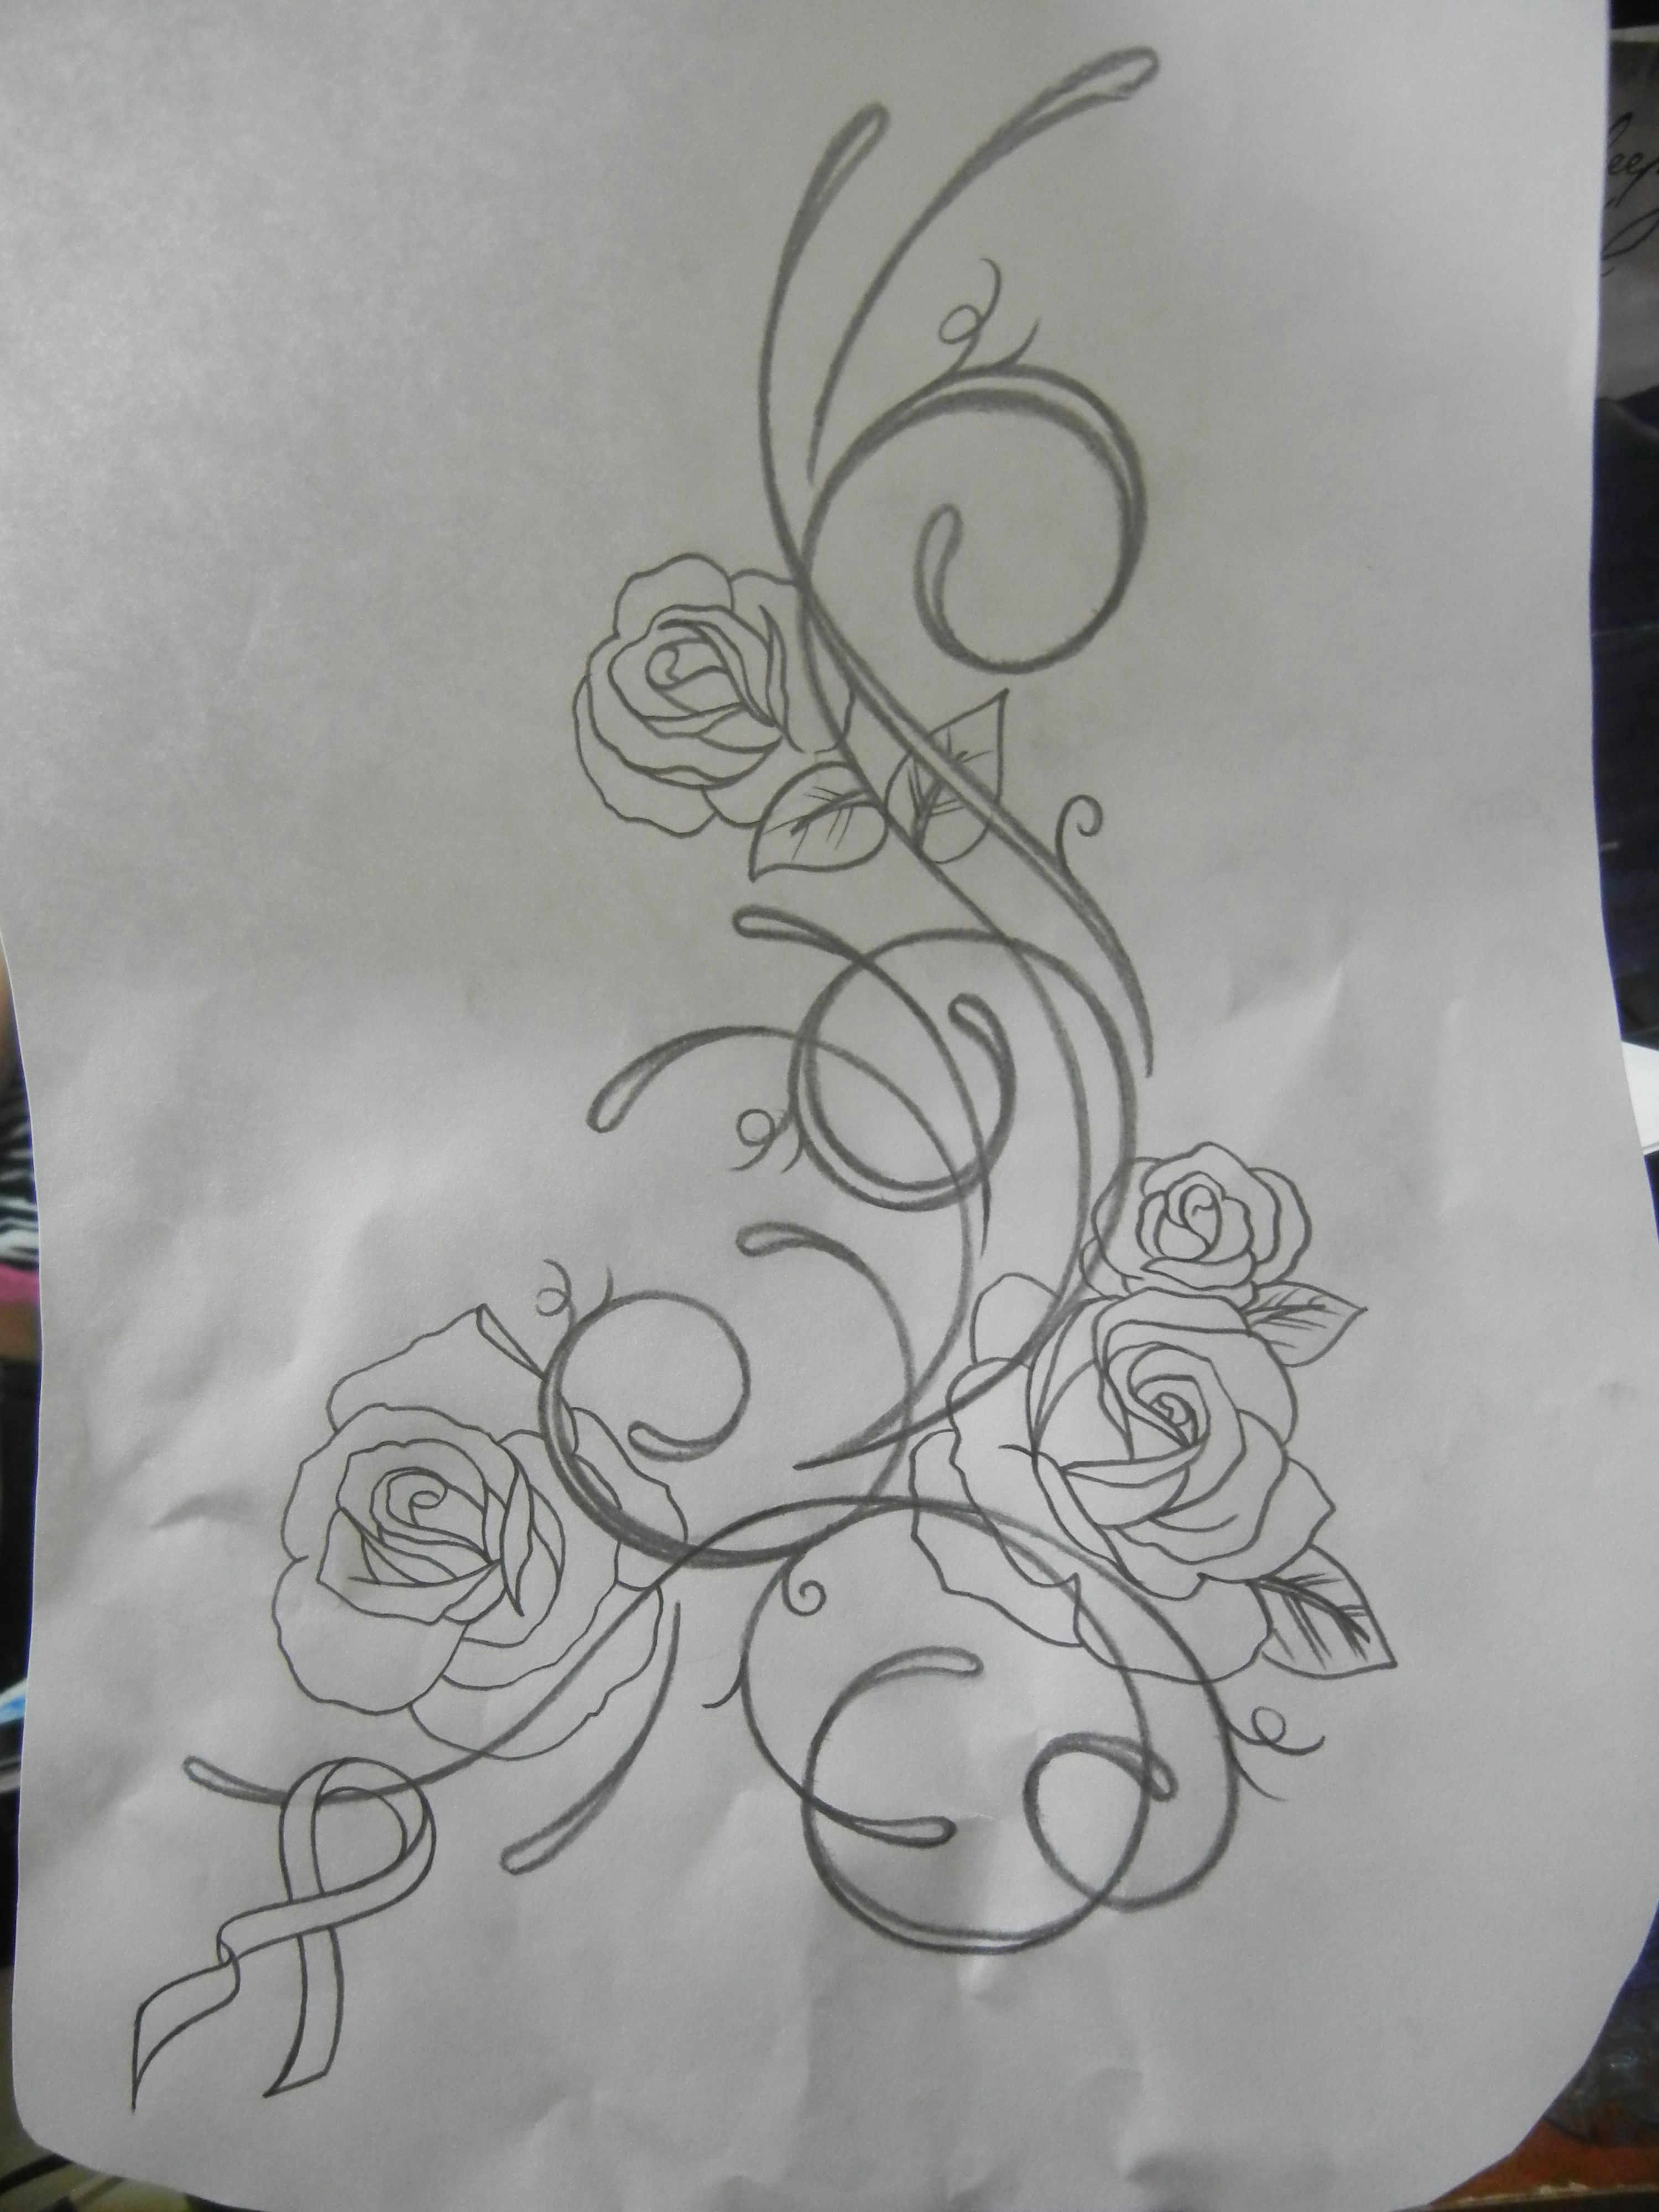 tattoo i m hopefully getting soon will be on my left hip n ribs and the roses will be more detailed ribbon will be teal the reason being is because when